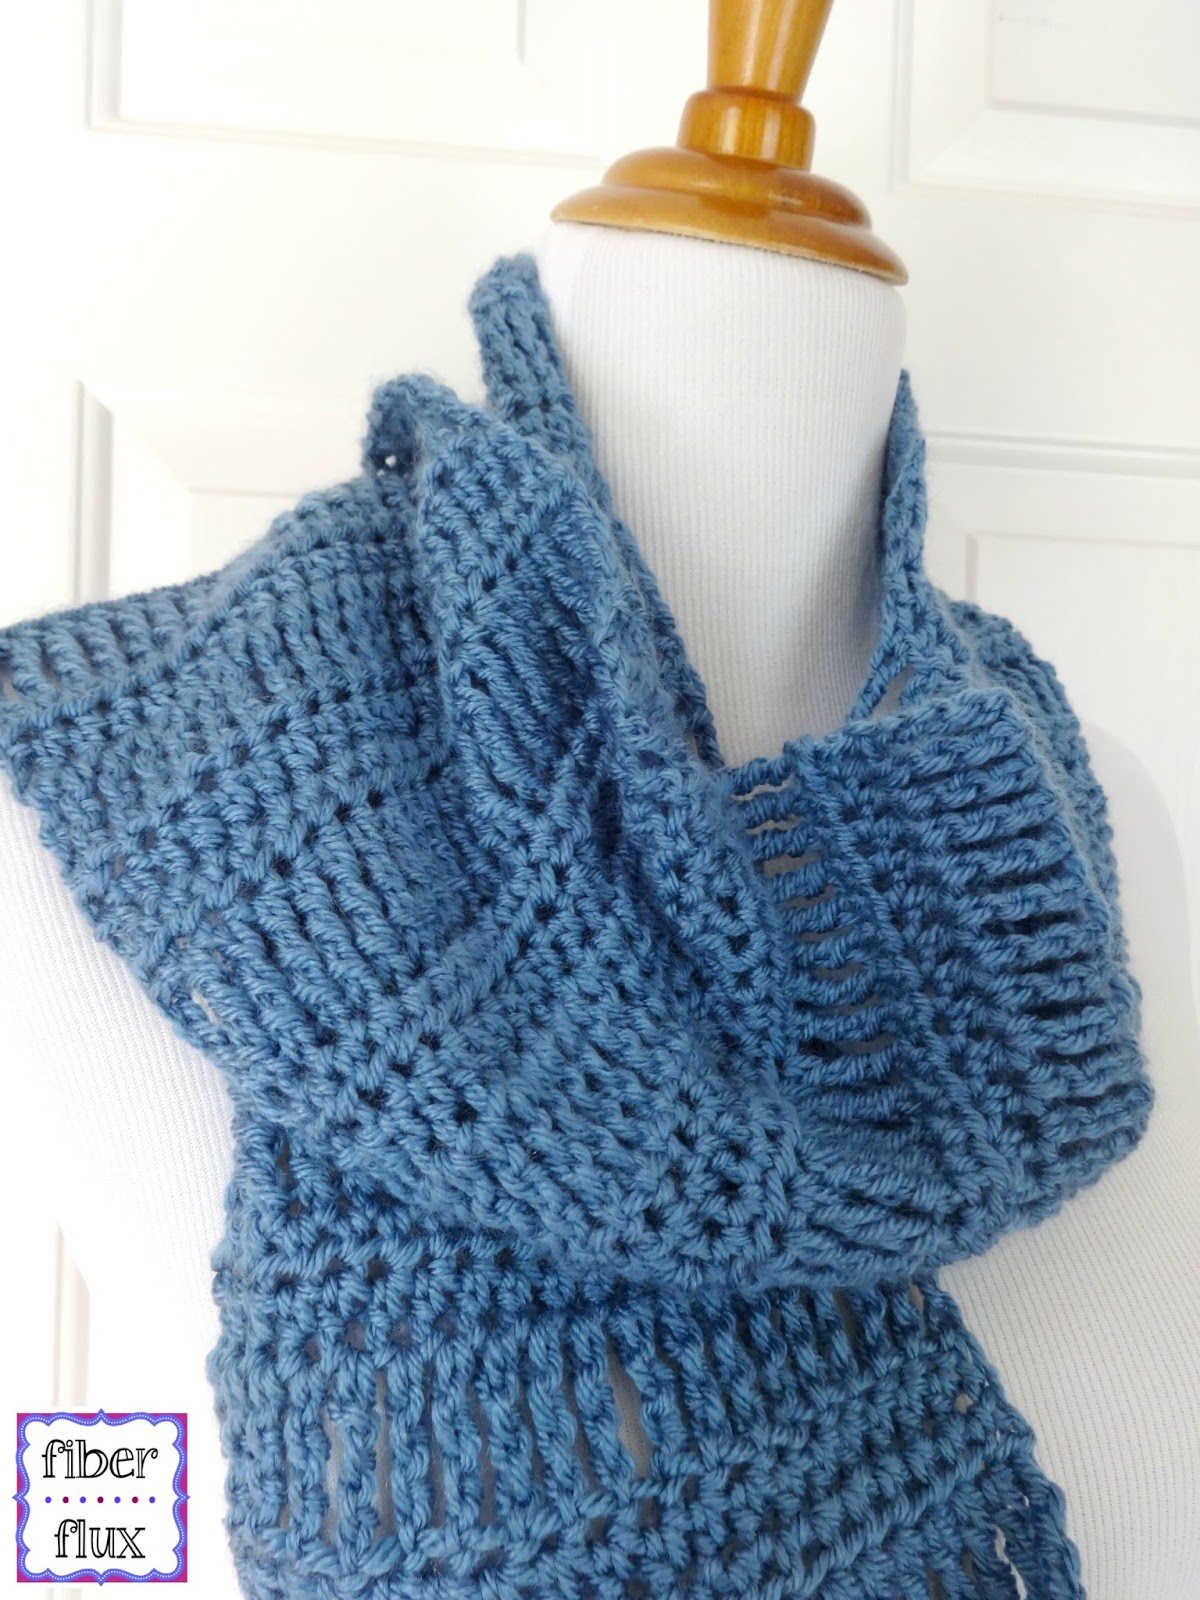 2015 Crochet Patterns : crochet scarf free pattern